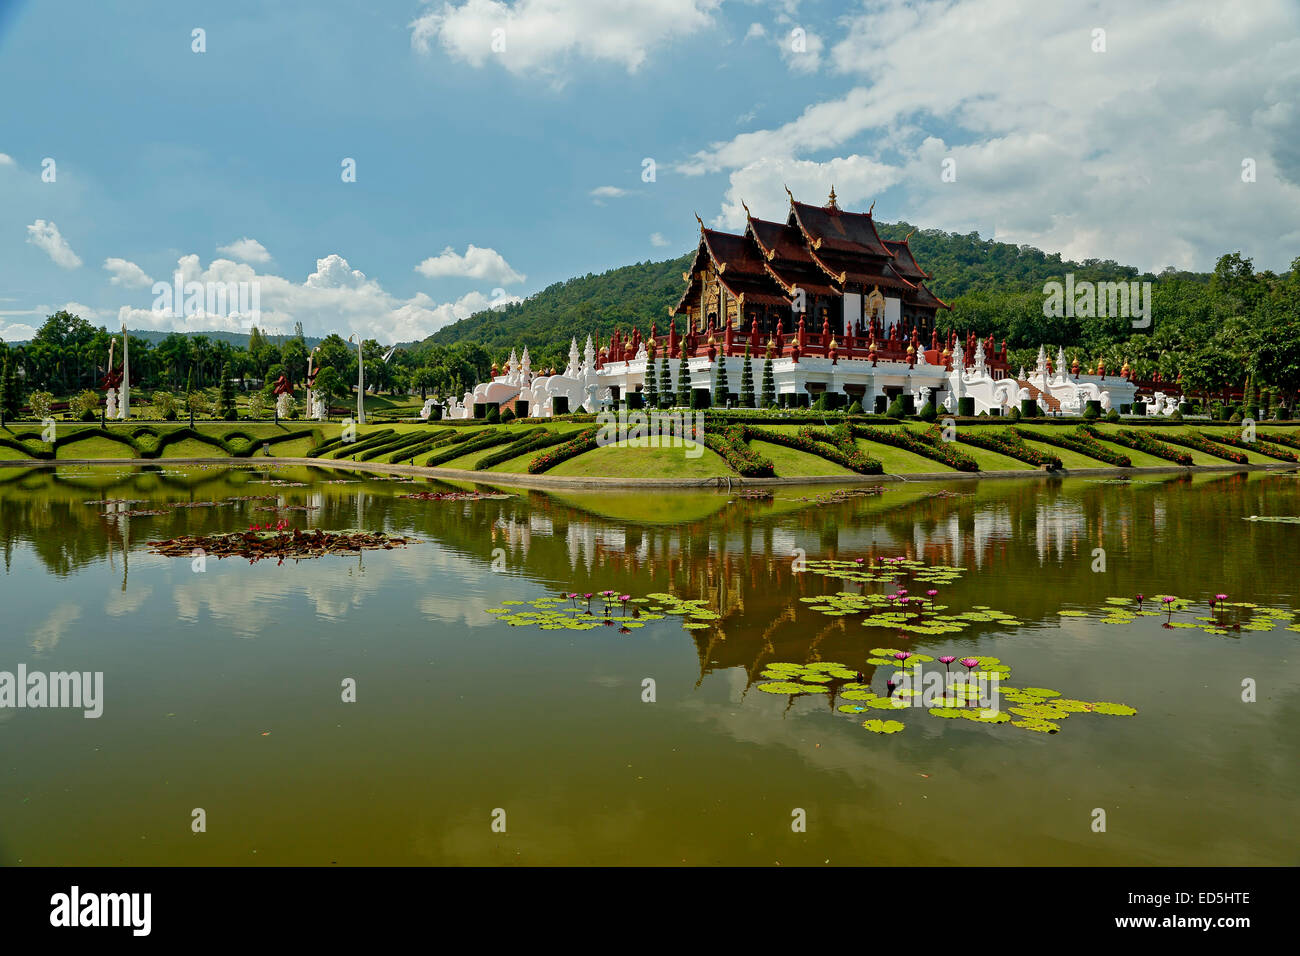 Royal Pavilion reflected on pond with lily pads, Royal Park Rajapruek, Chiang Mai, Thailand - Stock Image